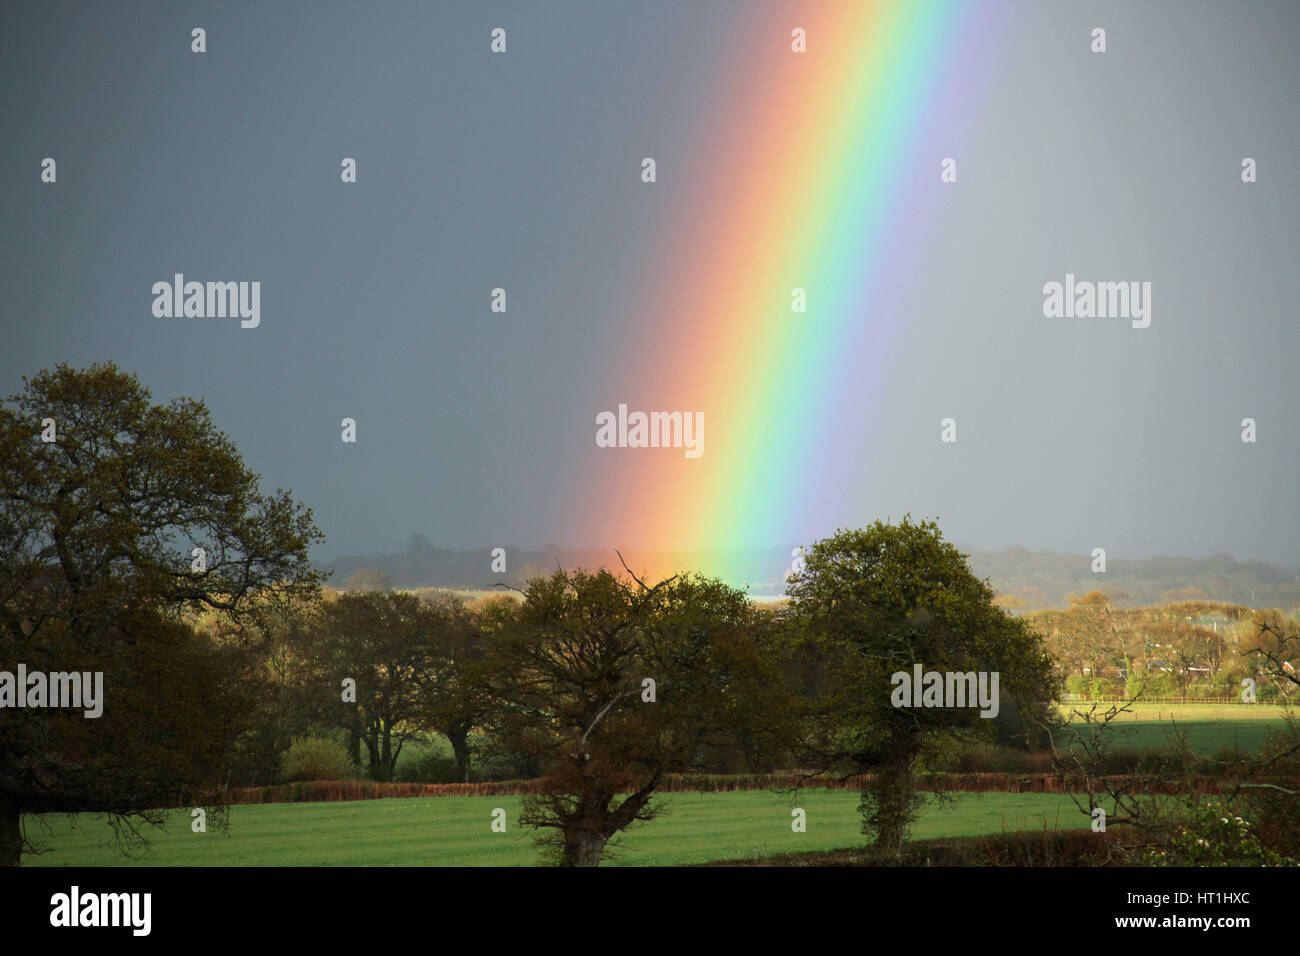 Vibrant colourful rain bow over the English country side - Stock Image